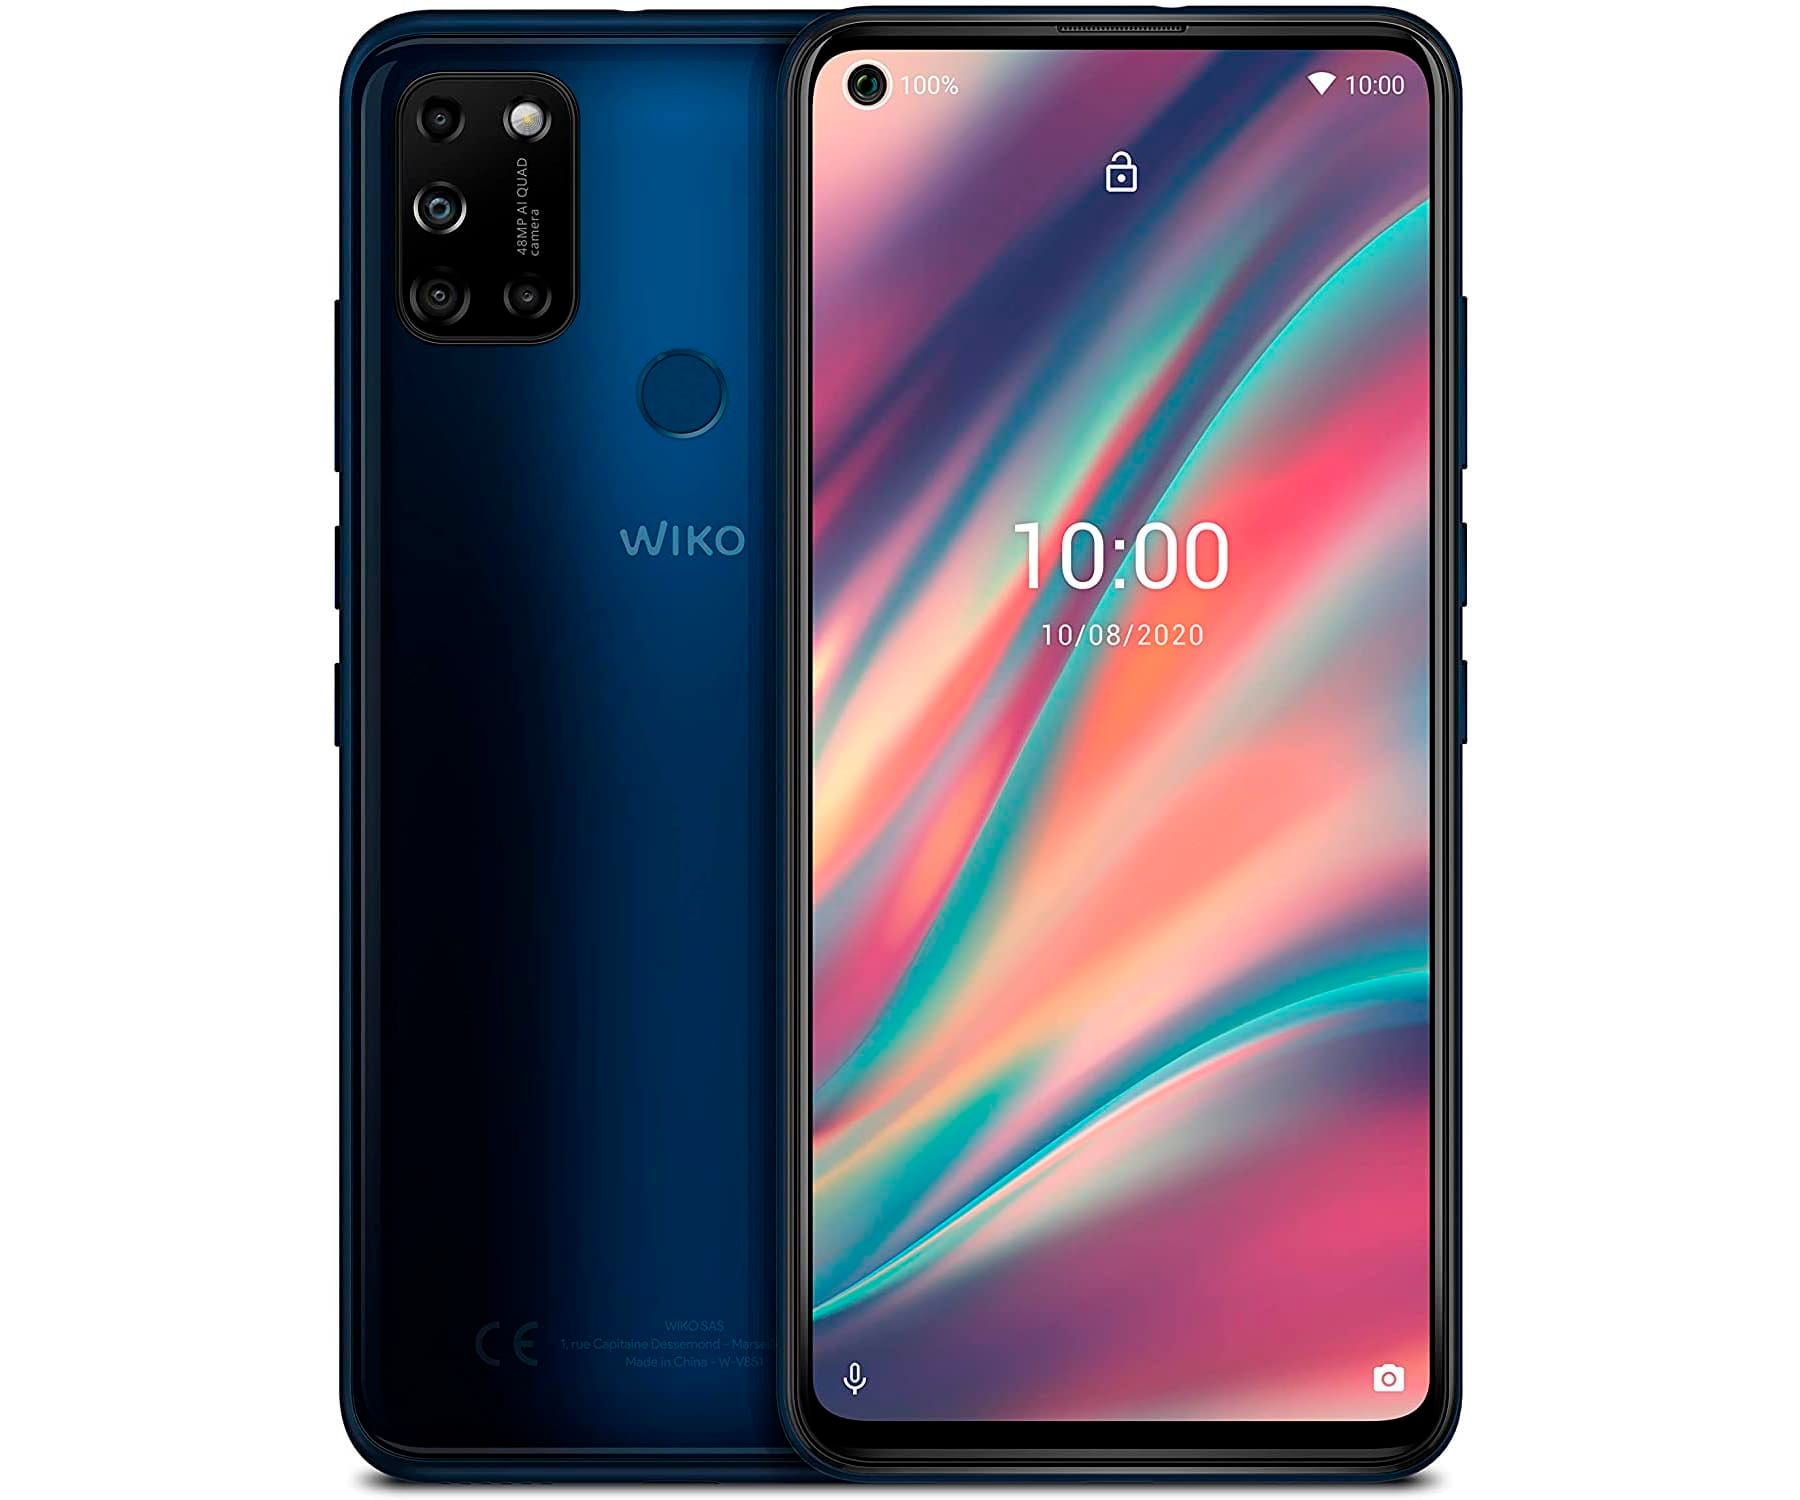 WIKO VIEW5 AZUL MÓVIL 4G DUAL SIM 6.55'' IPS HD+ OCTACORE 64GB 3GB RAM QUADCAM 48MP SELFIES 8MP